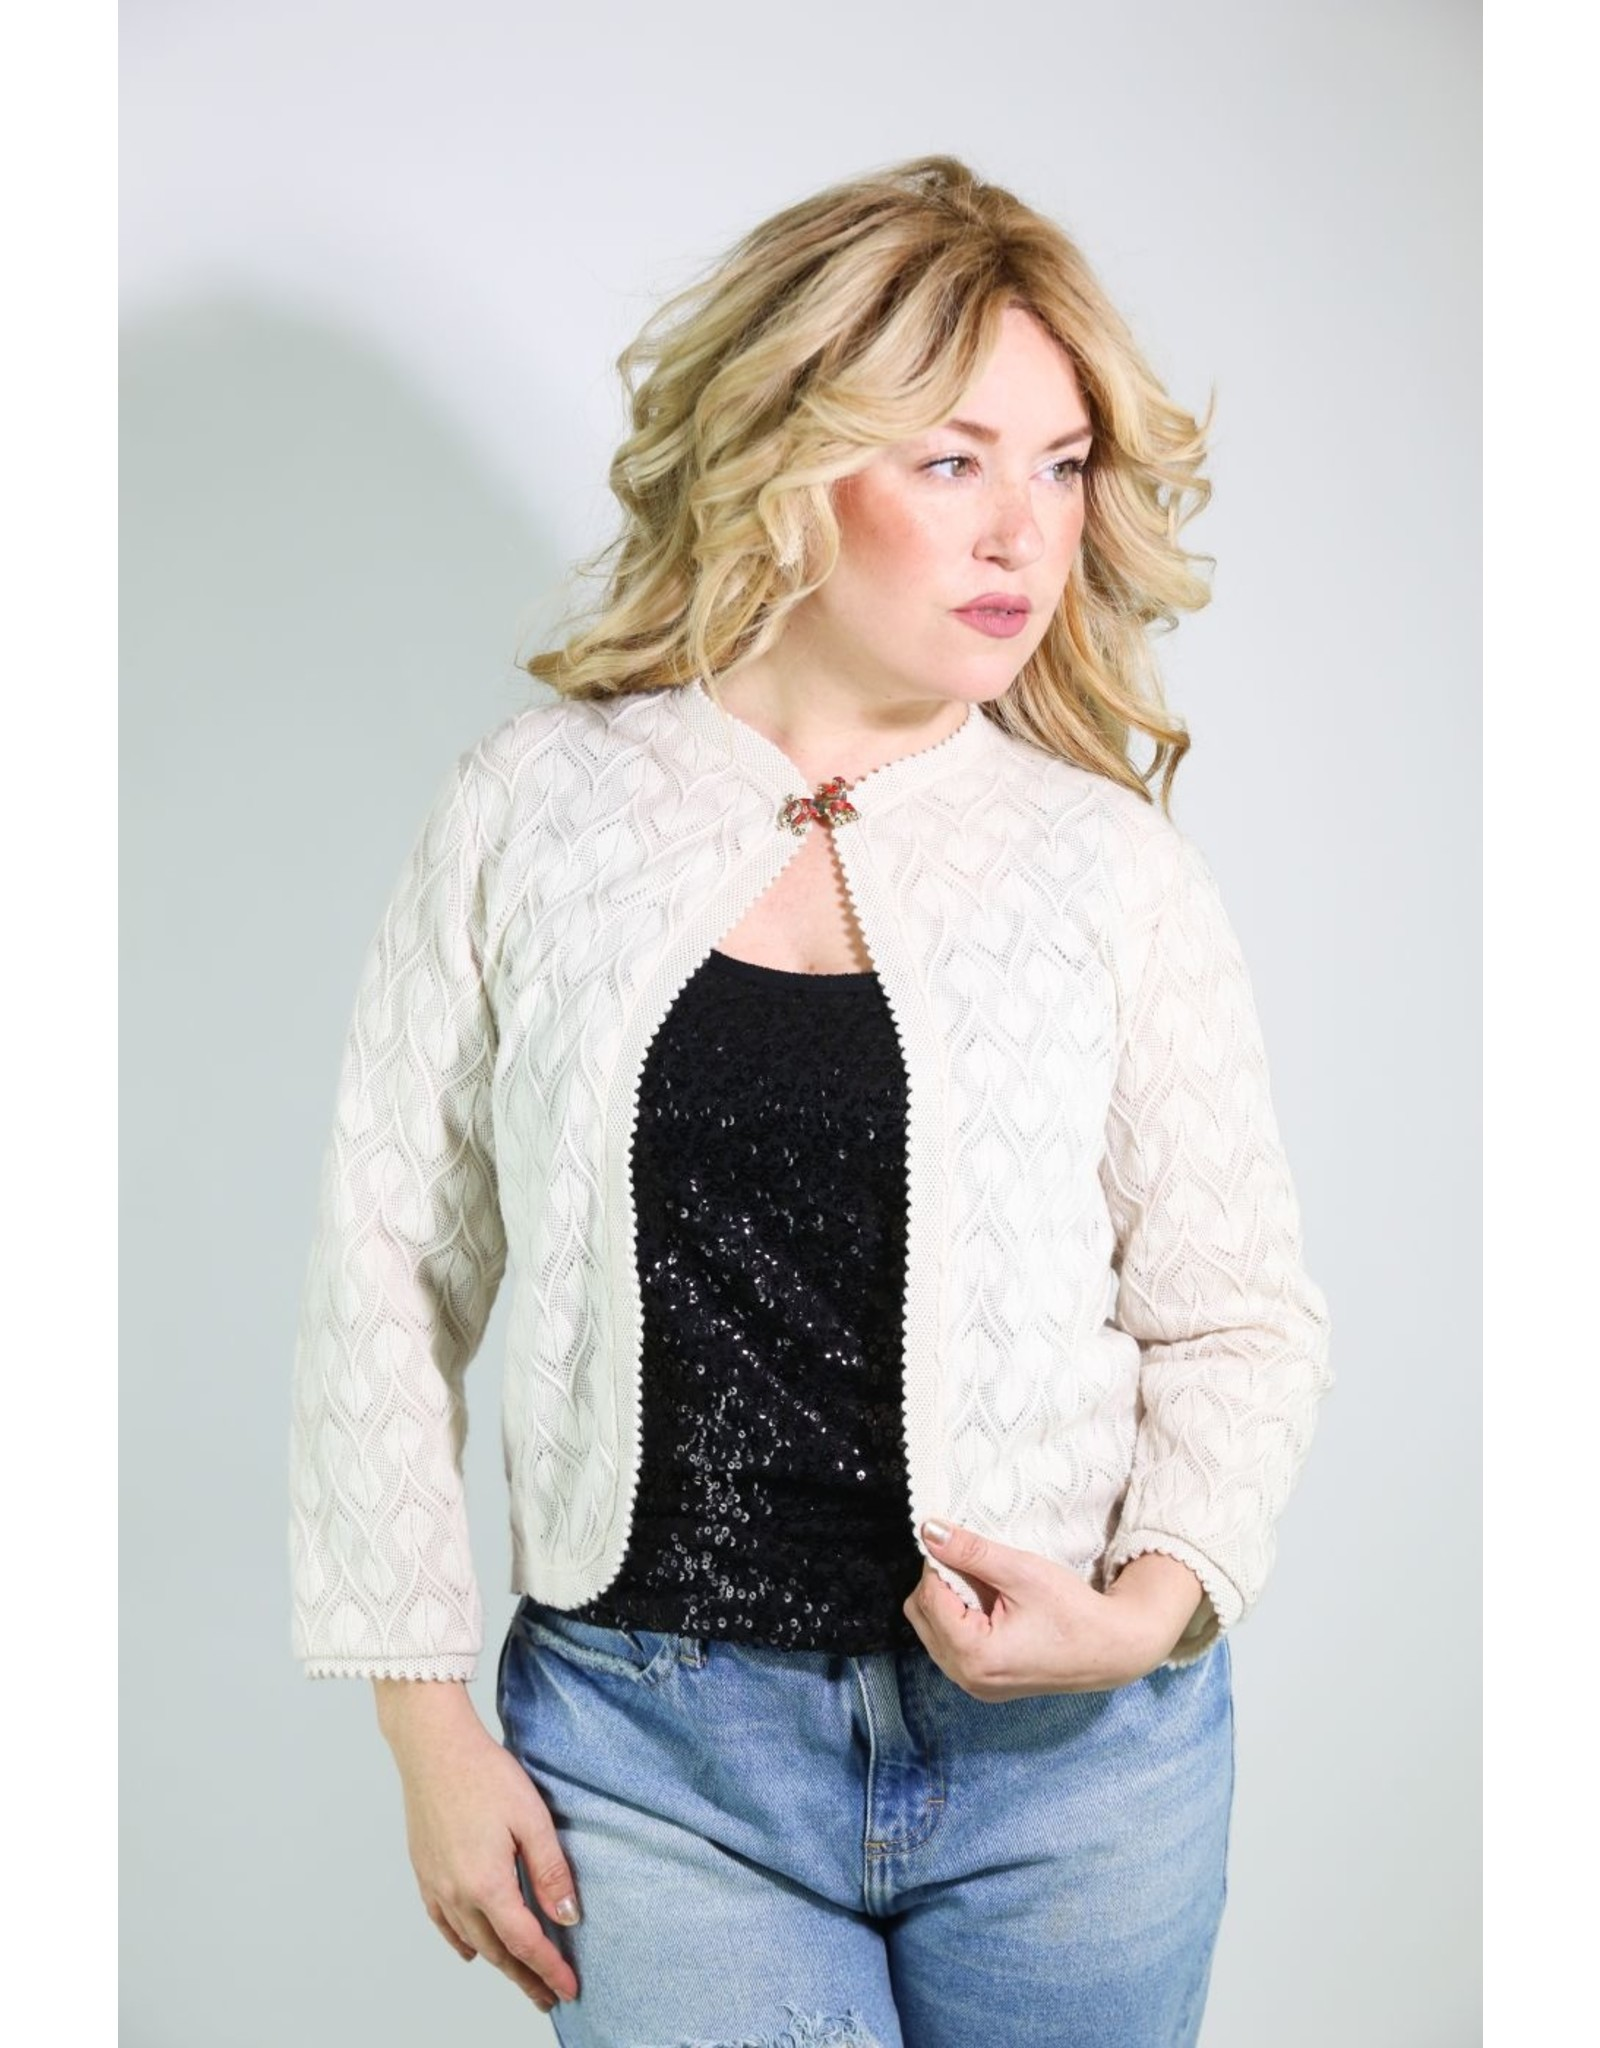 1950's Ivory Vienna Lace Knit Cardigan